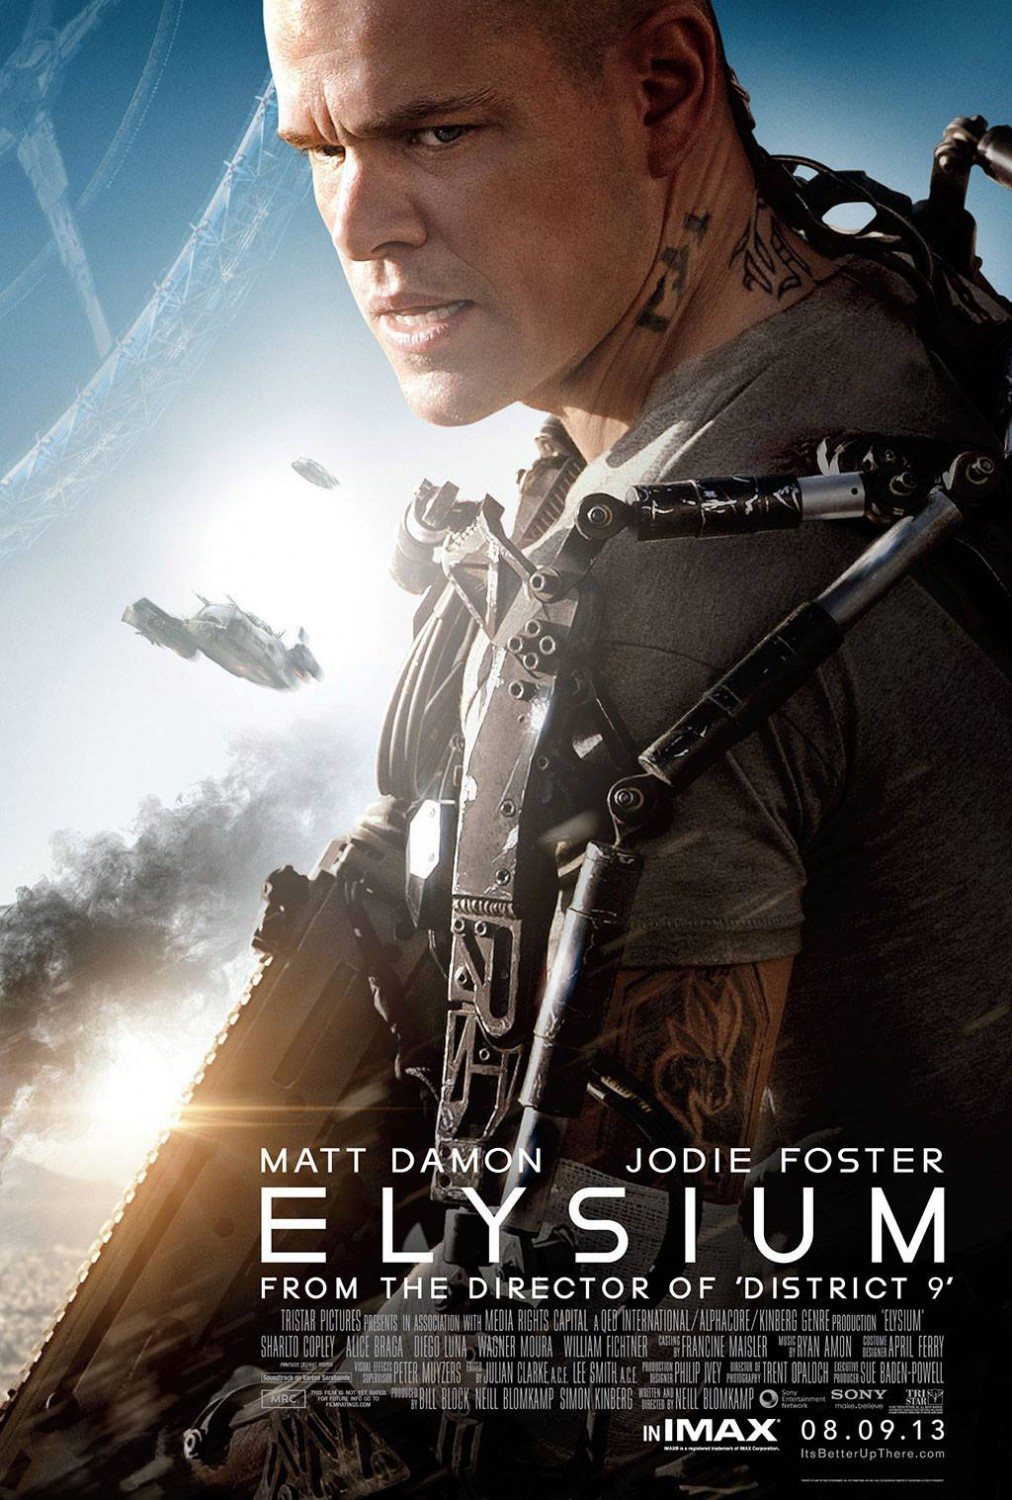 elysium-movie-poster.jpg